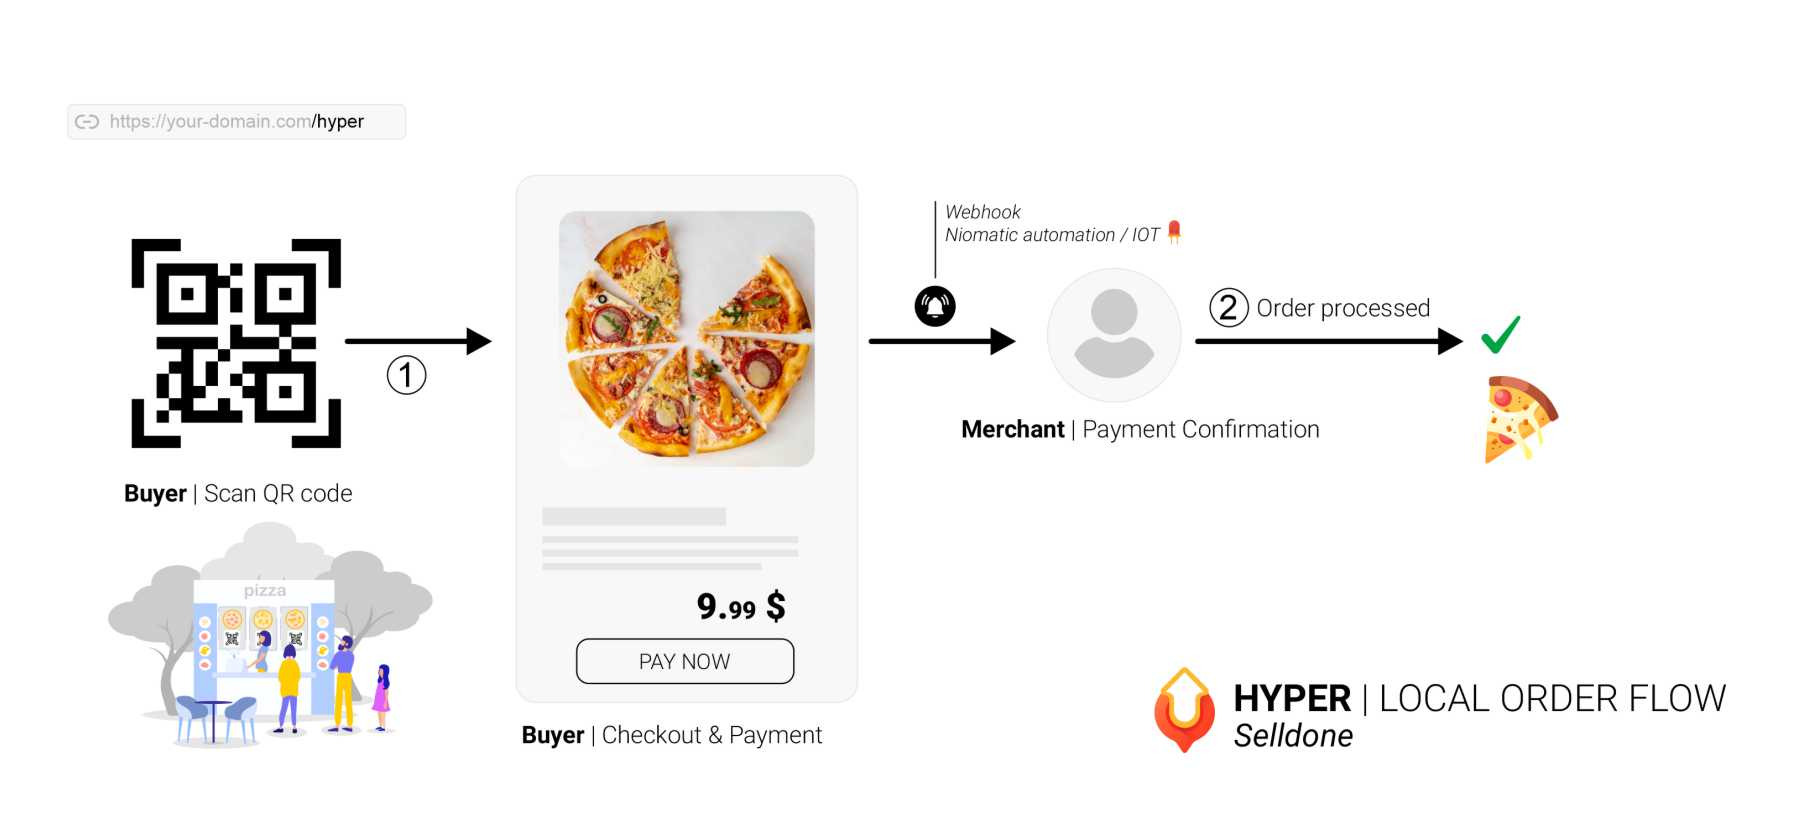 Hyper orders fulfillment. Sell in a super-fast way!